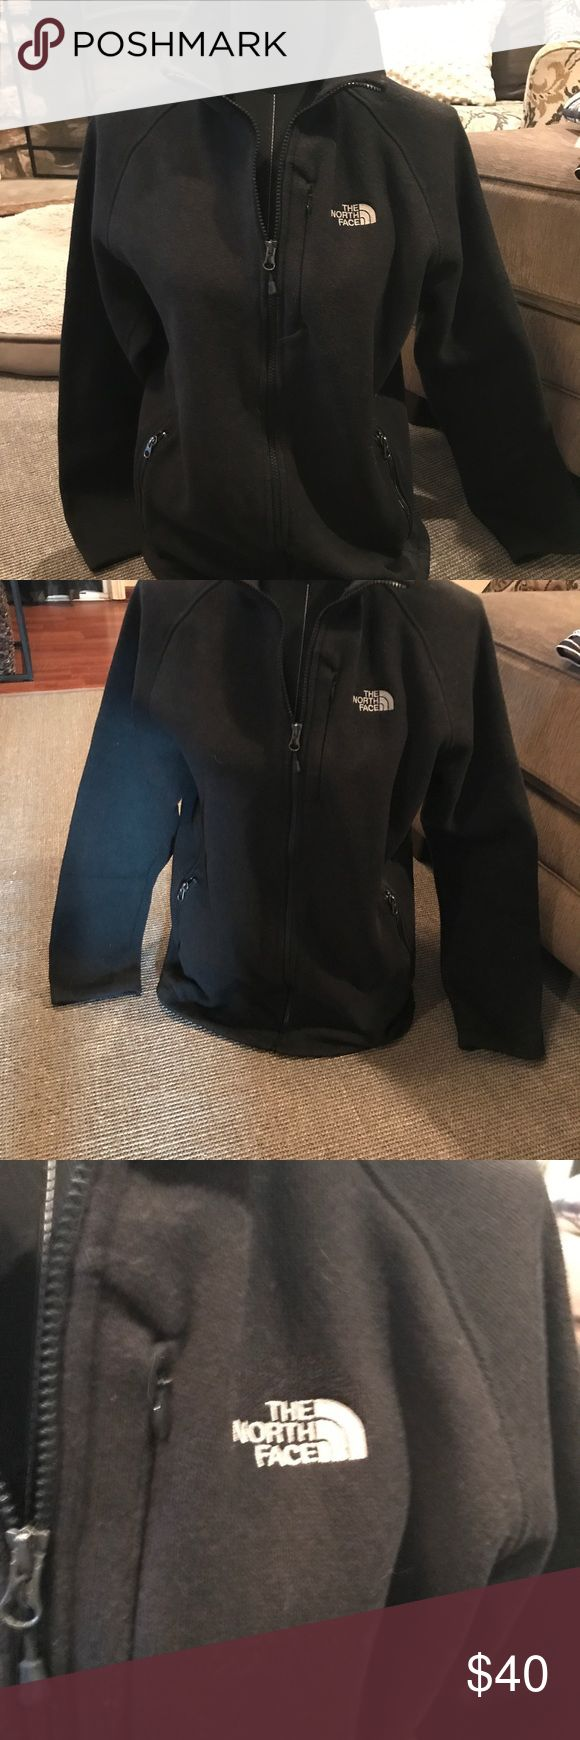 North Face men's jacket North Face jacket in very good condition The North Face Jackets & Coats